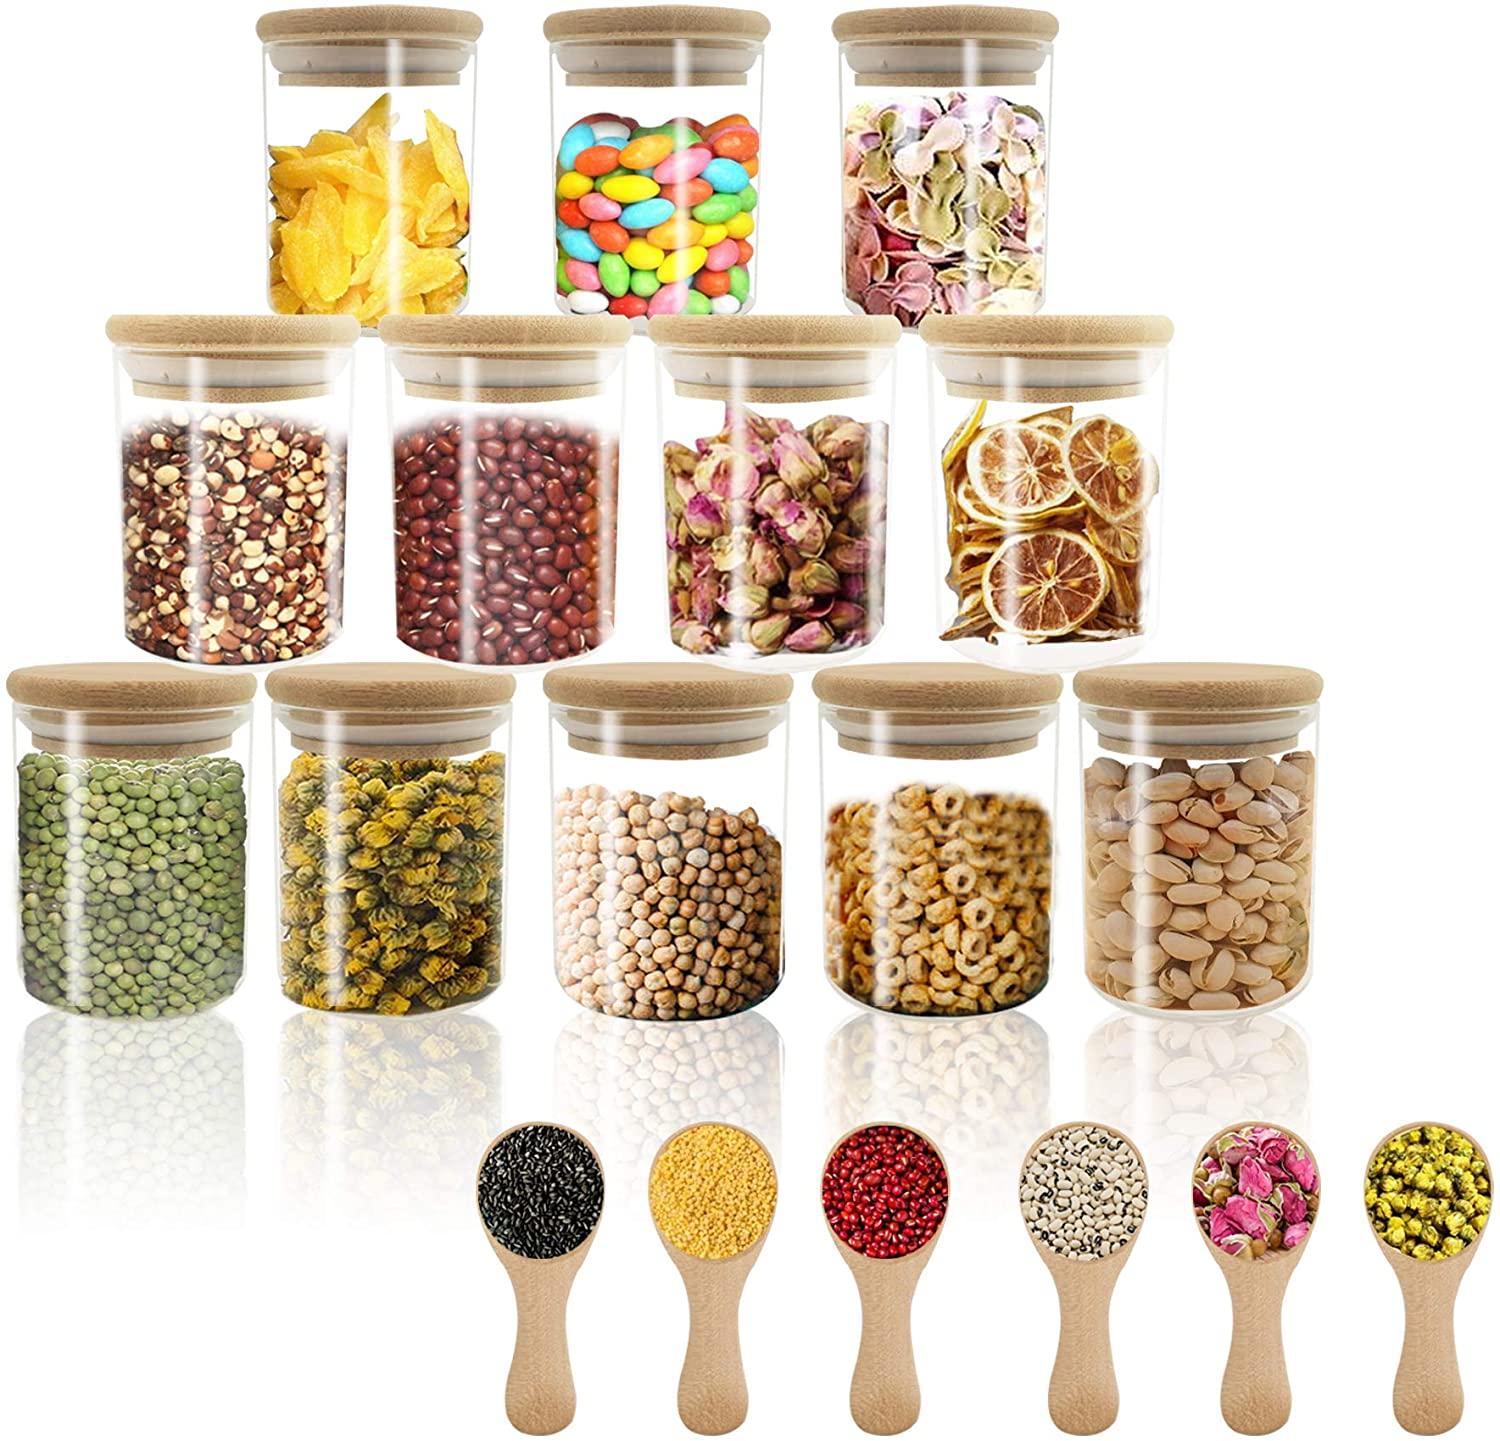 18pcs Glass jars Set, VIKEYHOME 12set 6oz Spice Jar Set with Bamboo Lids ,6pcs bonus Small Condiments wooden spoons , Small Airtight Glass Canister, Food Cereal Storage Containers for Home Kitchen Tea Herbs Pasta Coffee Flour Herbs Grains